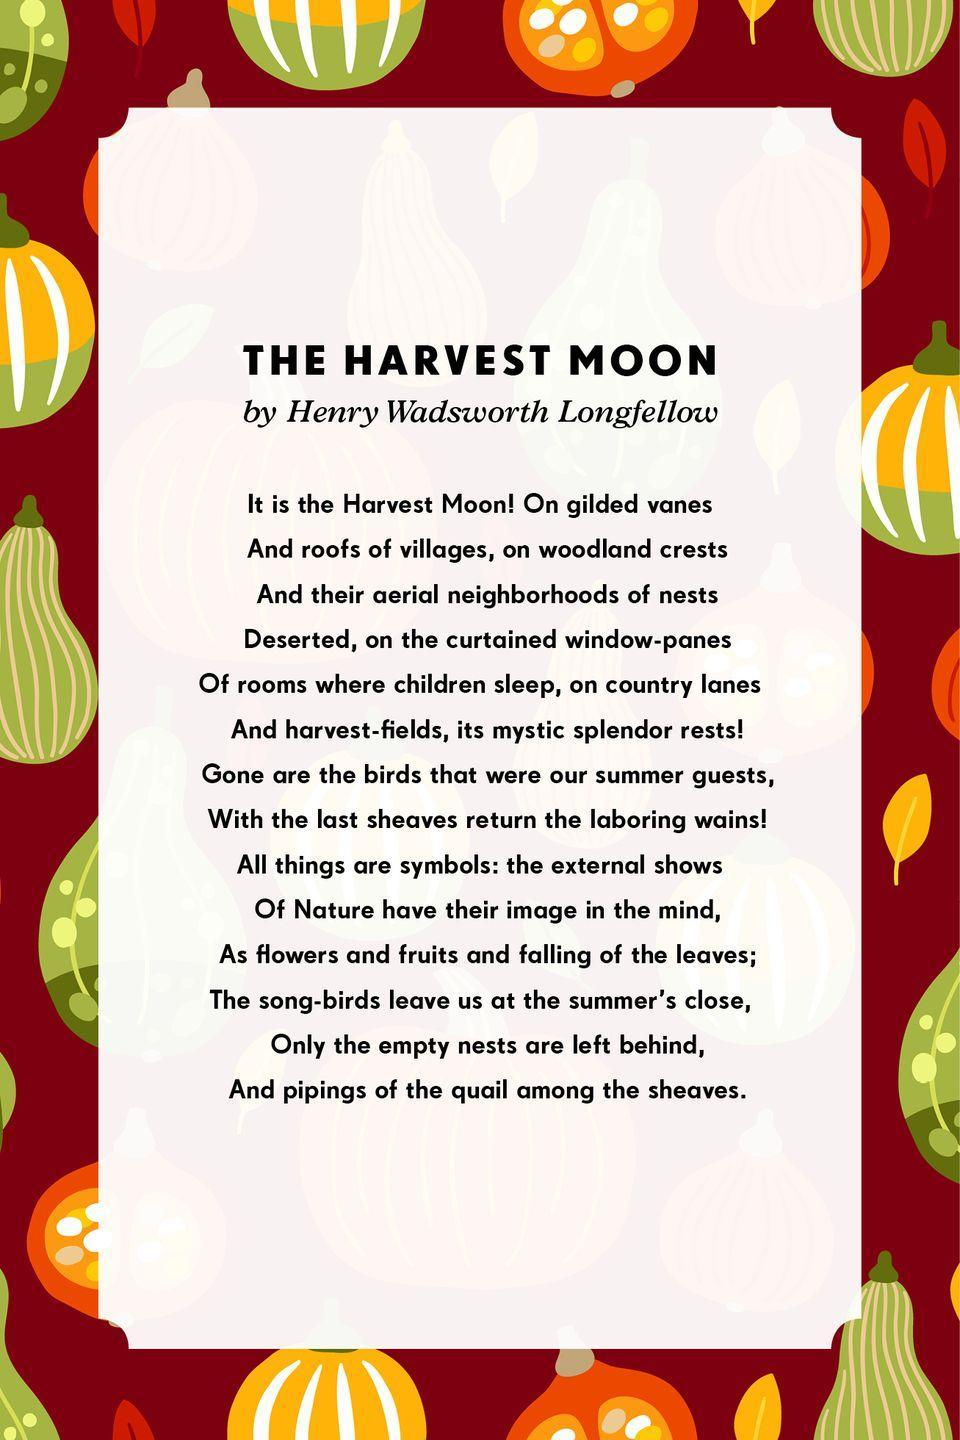 <p><strong>The Harvest Moon</strong></p><p>It is the Harvest Moon! On gilded vanes<br> And roofs of villages, on woodland crests<br> And their aerial neighborhoods of nests<br> Deserted, on the curtained window-panes<br>Of rooms where children sleep, on country lanes<br> And harvest-fields, its mystic splendor rests!<br> Gone are the birds that were our summer guests,<br> With the last sheaves return the laboring wains!<br>All things are symbols: the external shows<br> Of Nature have their image in the mind,<br> As flowers and fruits and falling of the leaves;<br>The song-birds leave us at the summer's close,<br> Only the empty nests are left behind,<br> And pipings of the quail among the sheaves.</p>